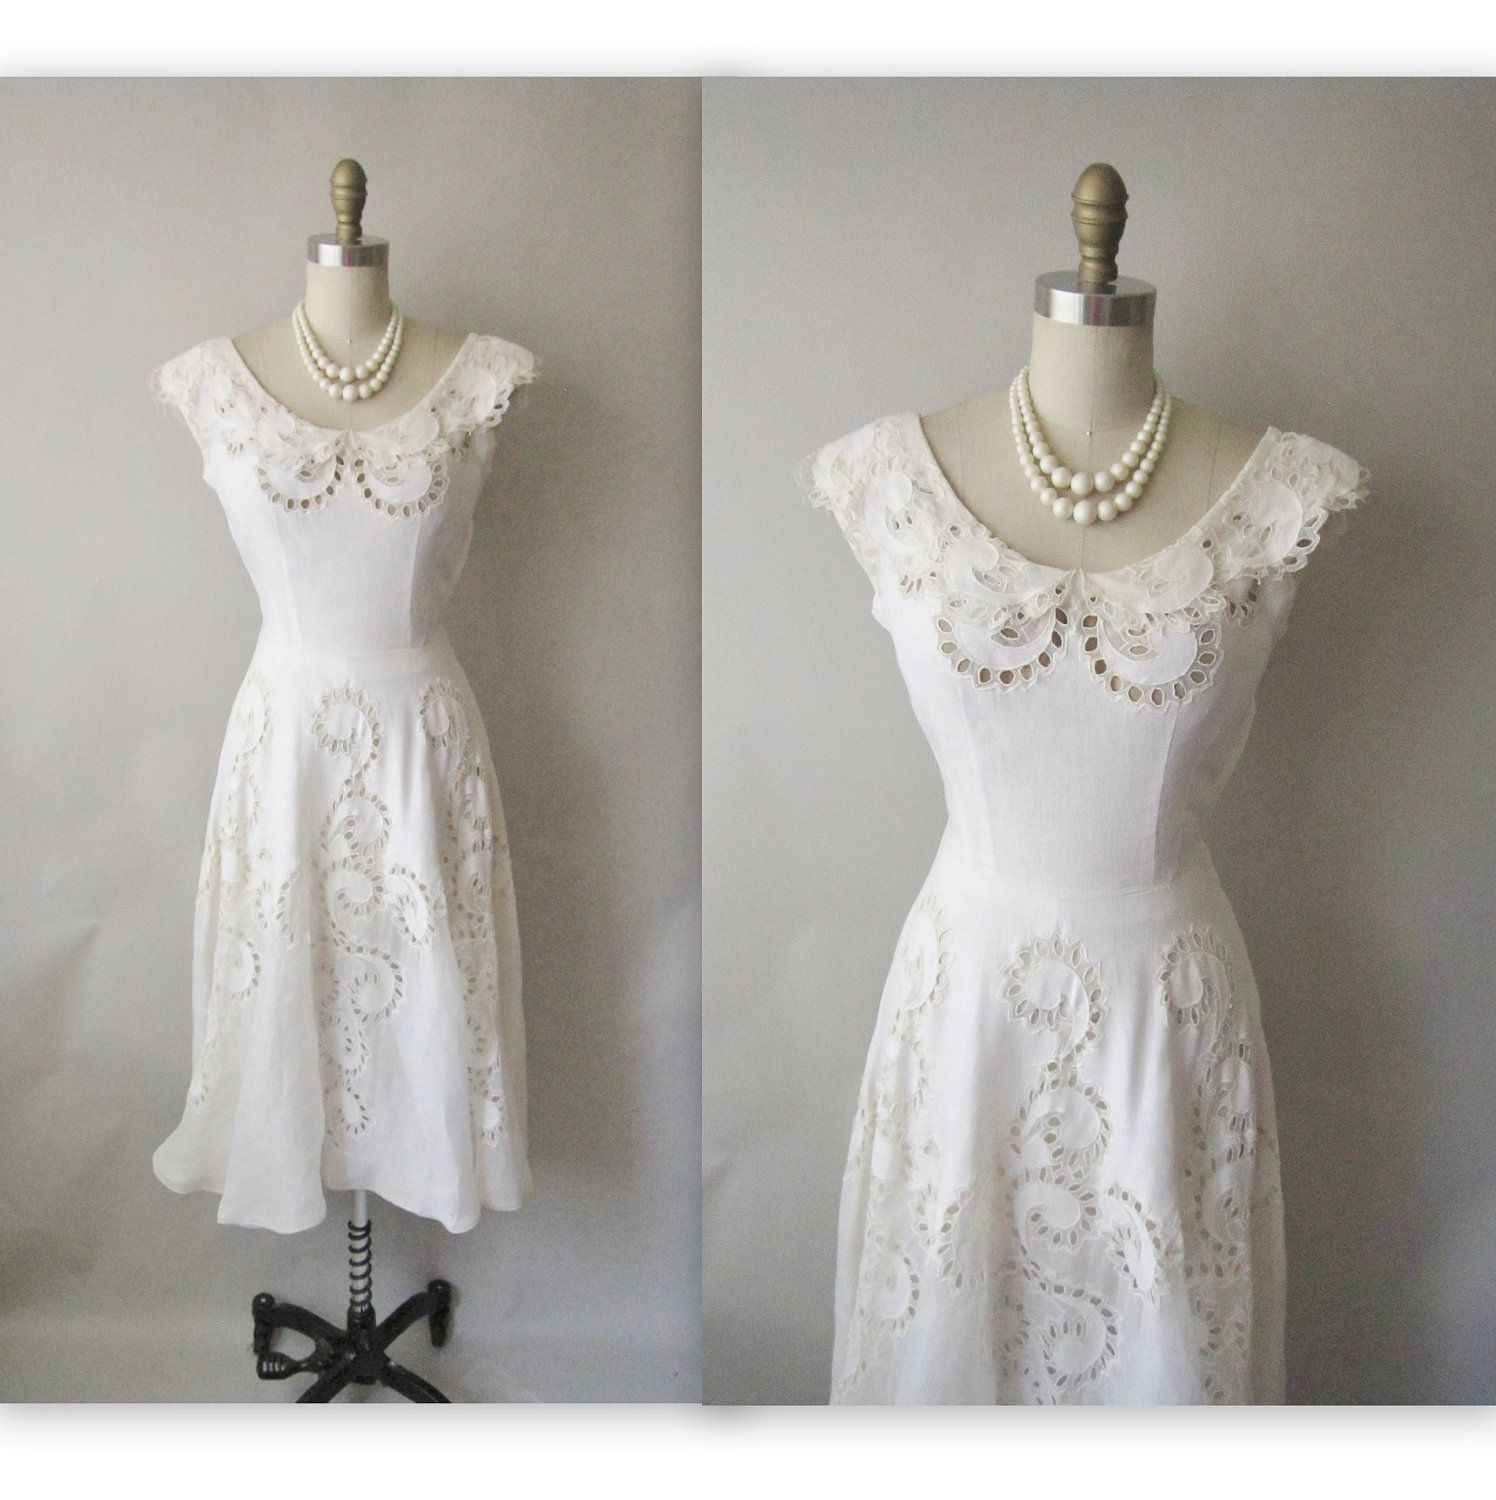 Spectacular KITTY Wedding Dress Tea Length Eyelet by FrenchKnotCouture on Etsy